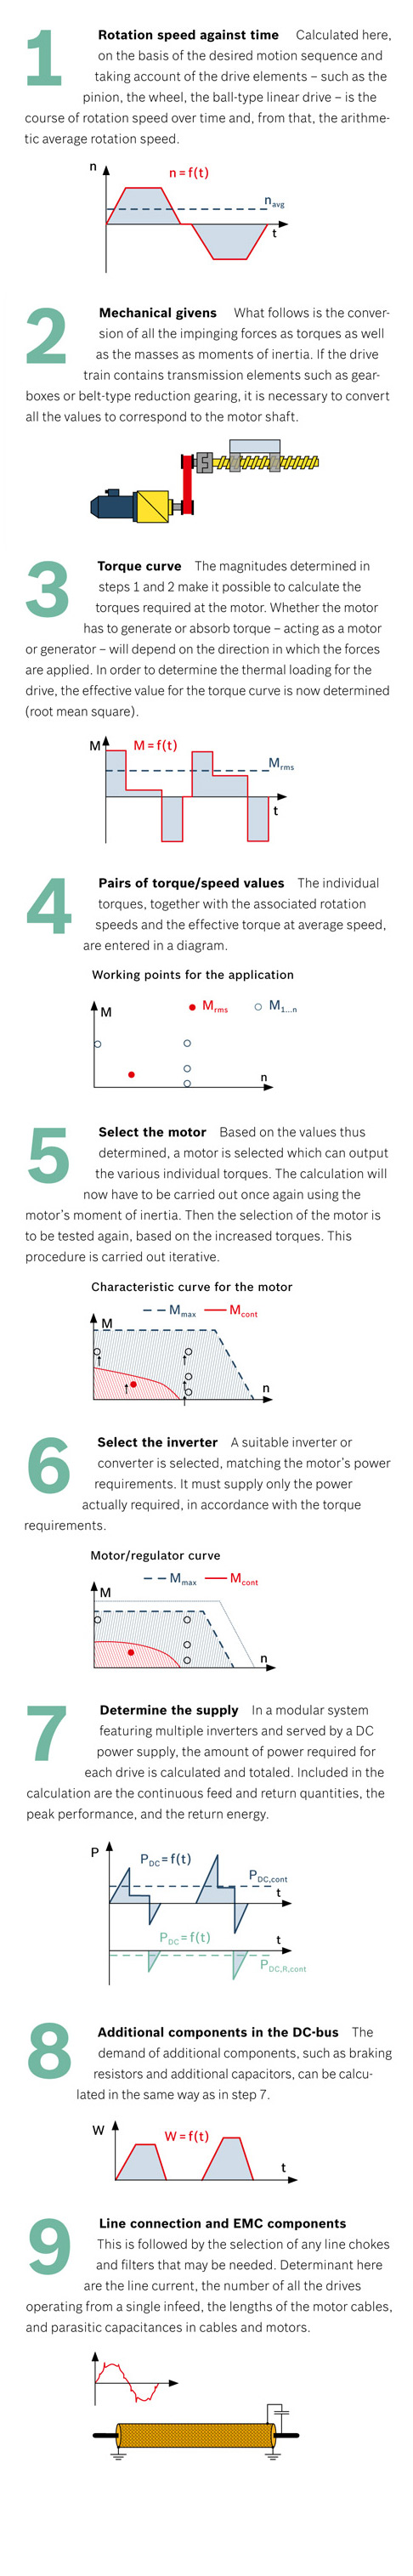 Nine steps to the proper drive